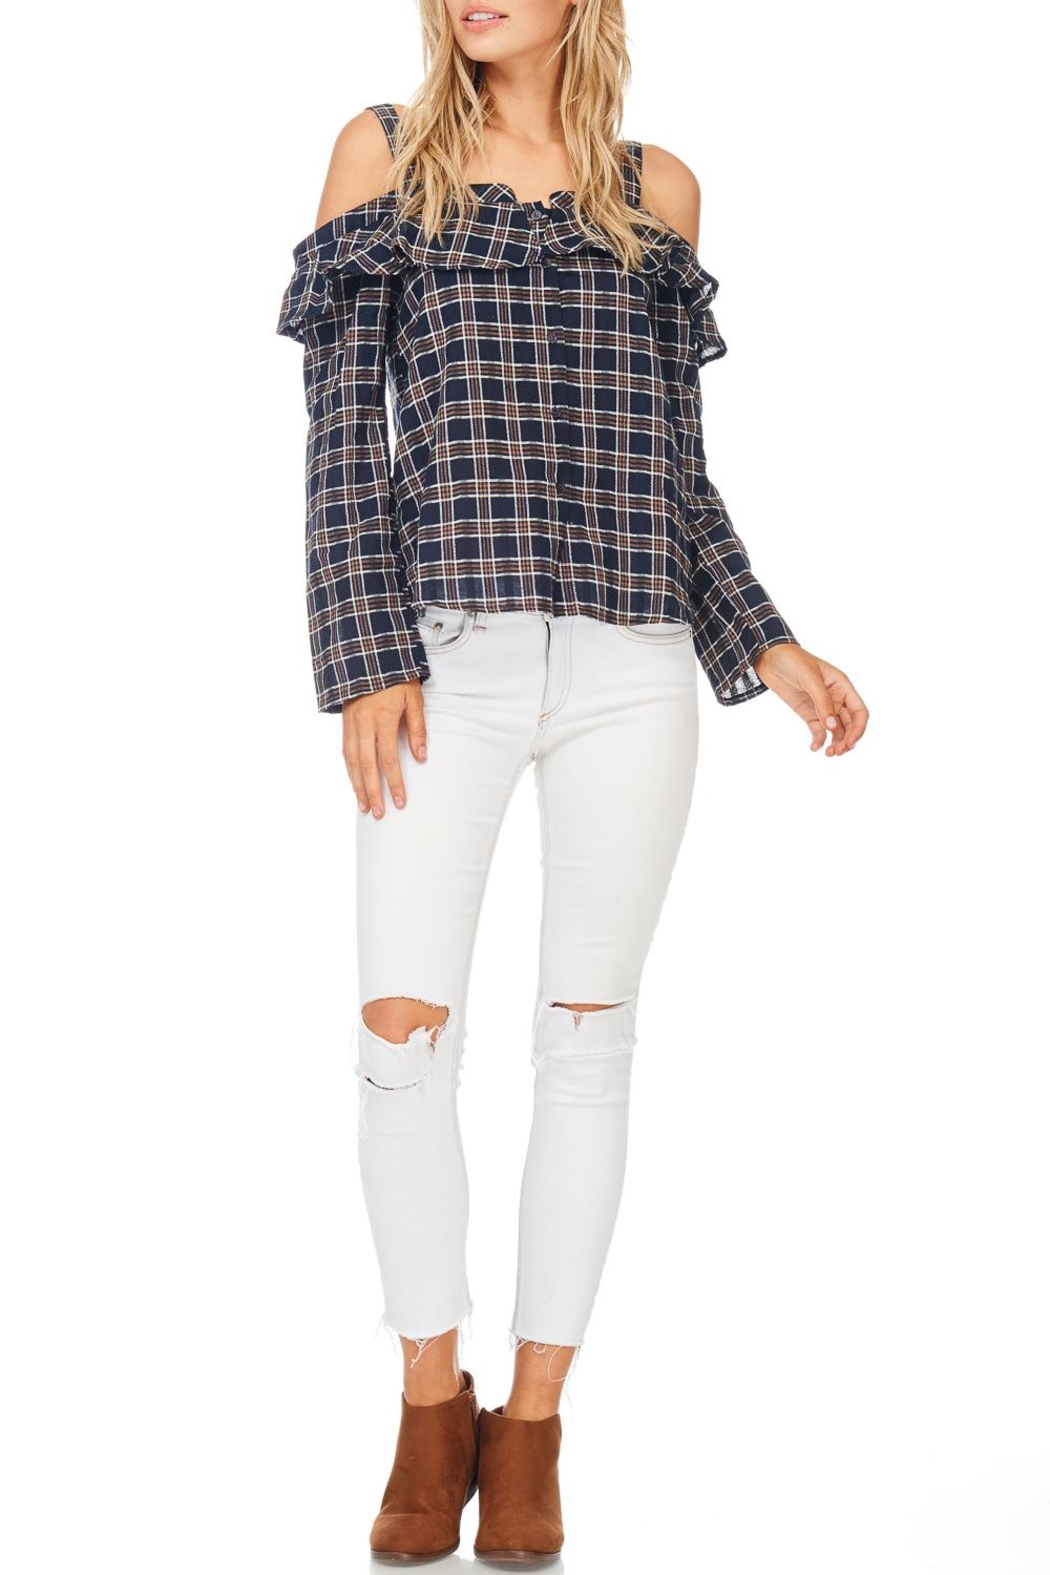 LoveRiche Plaid Cold Shoulder Top - Front Cropped Image